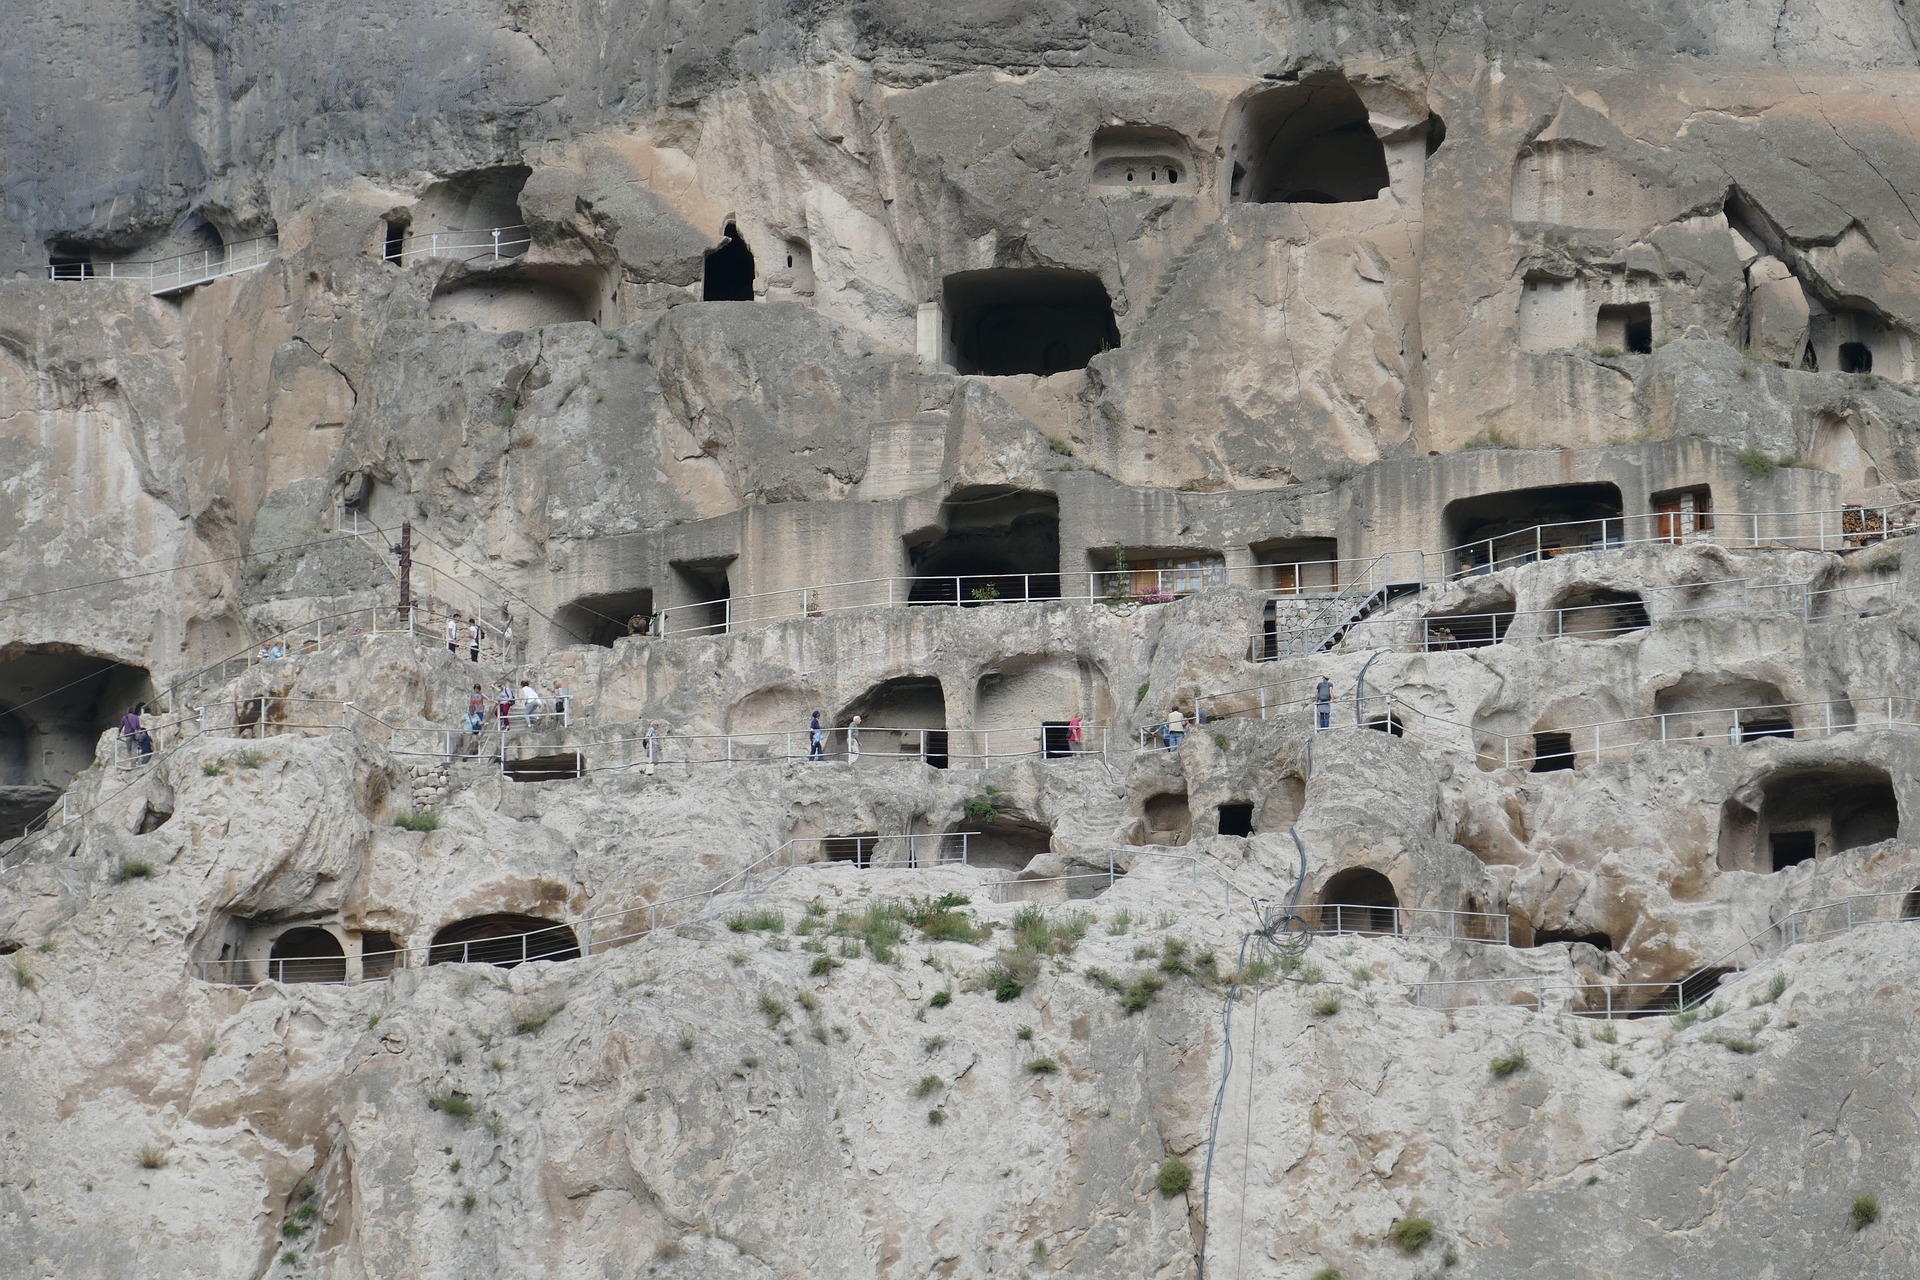 The Vardzia Fortress was primarily built during the second half of the 12th Century. It stretched 13 levels and contained 6,000 apartments, a throne room and a large church with an external bell tower.